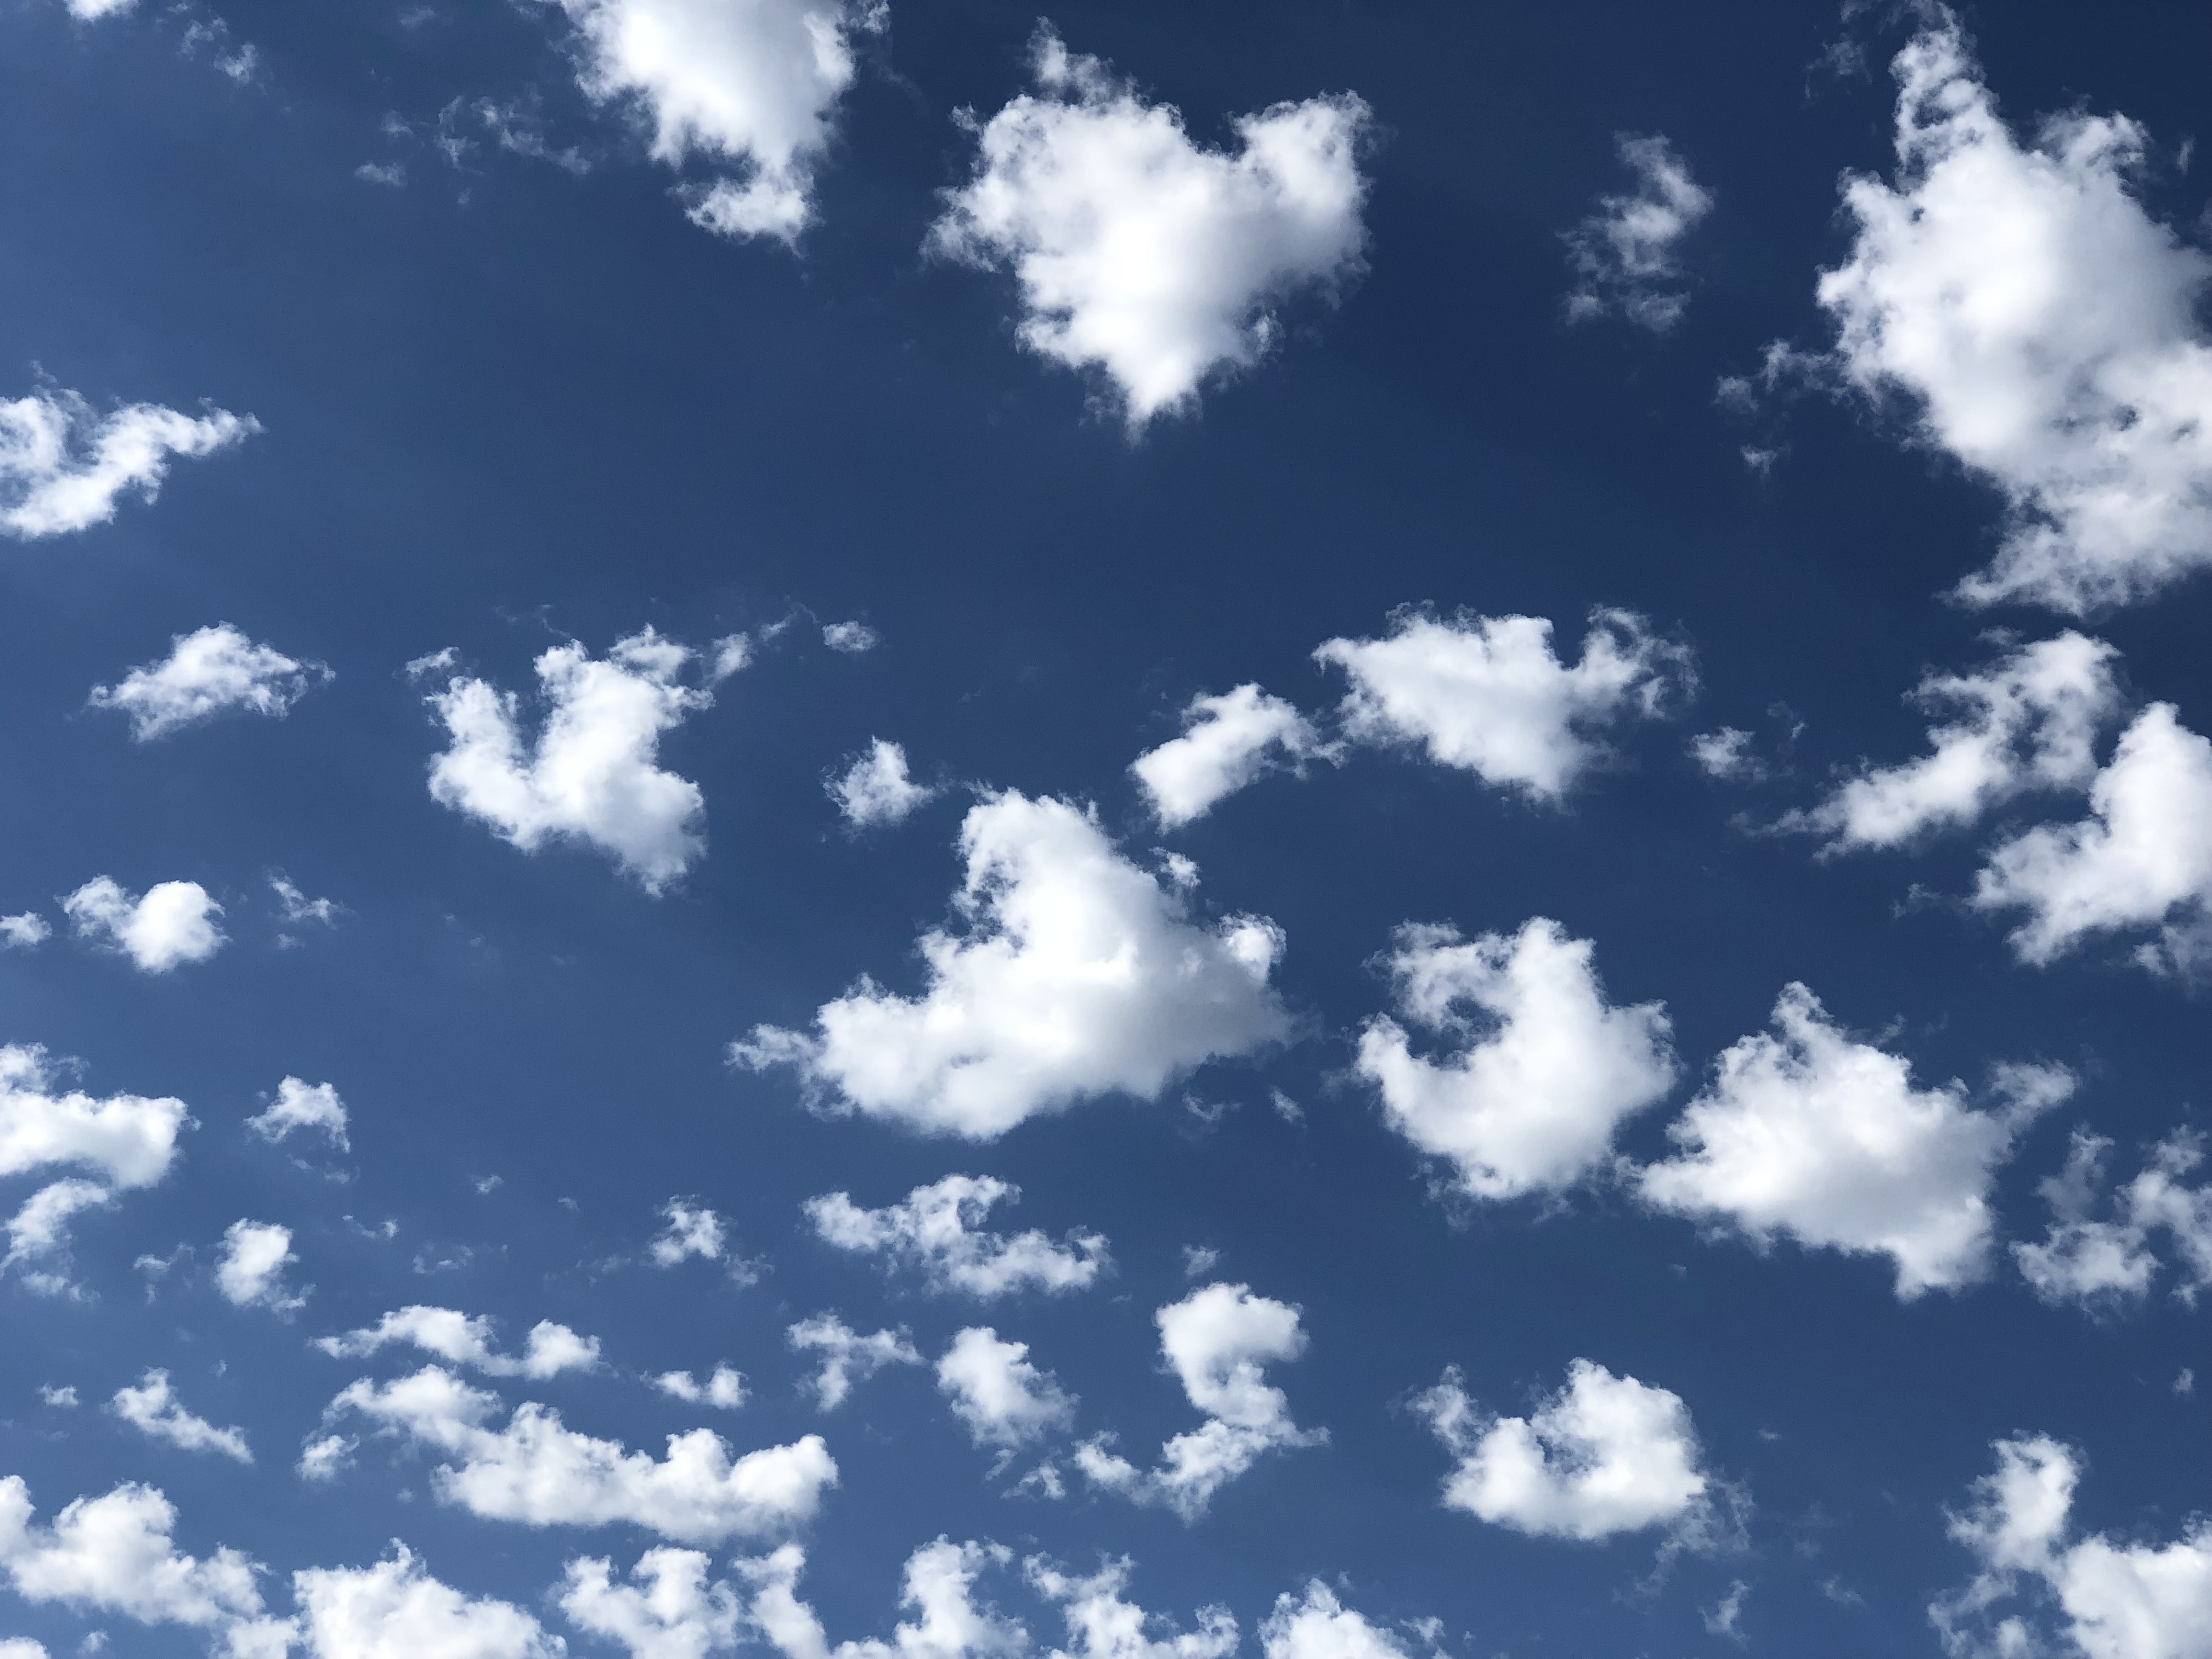 time lapse photography of cumulus clouds